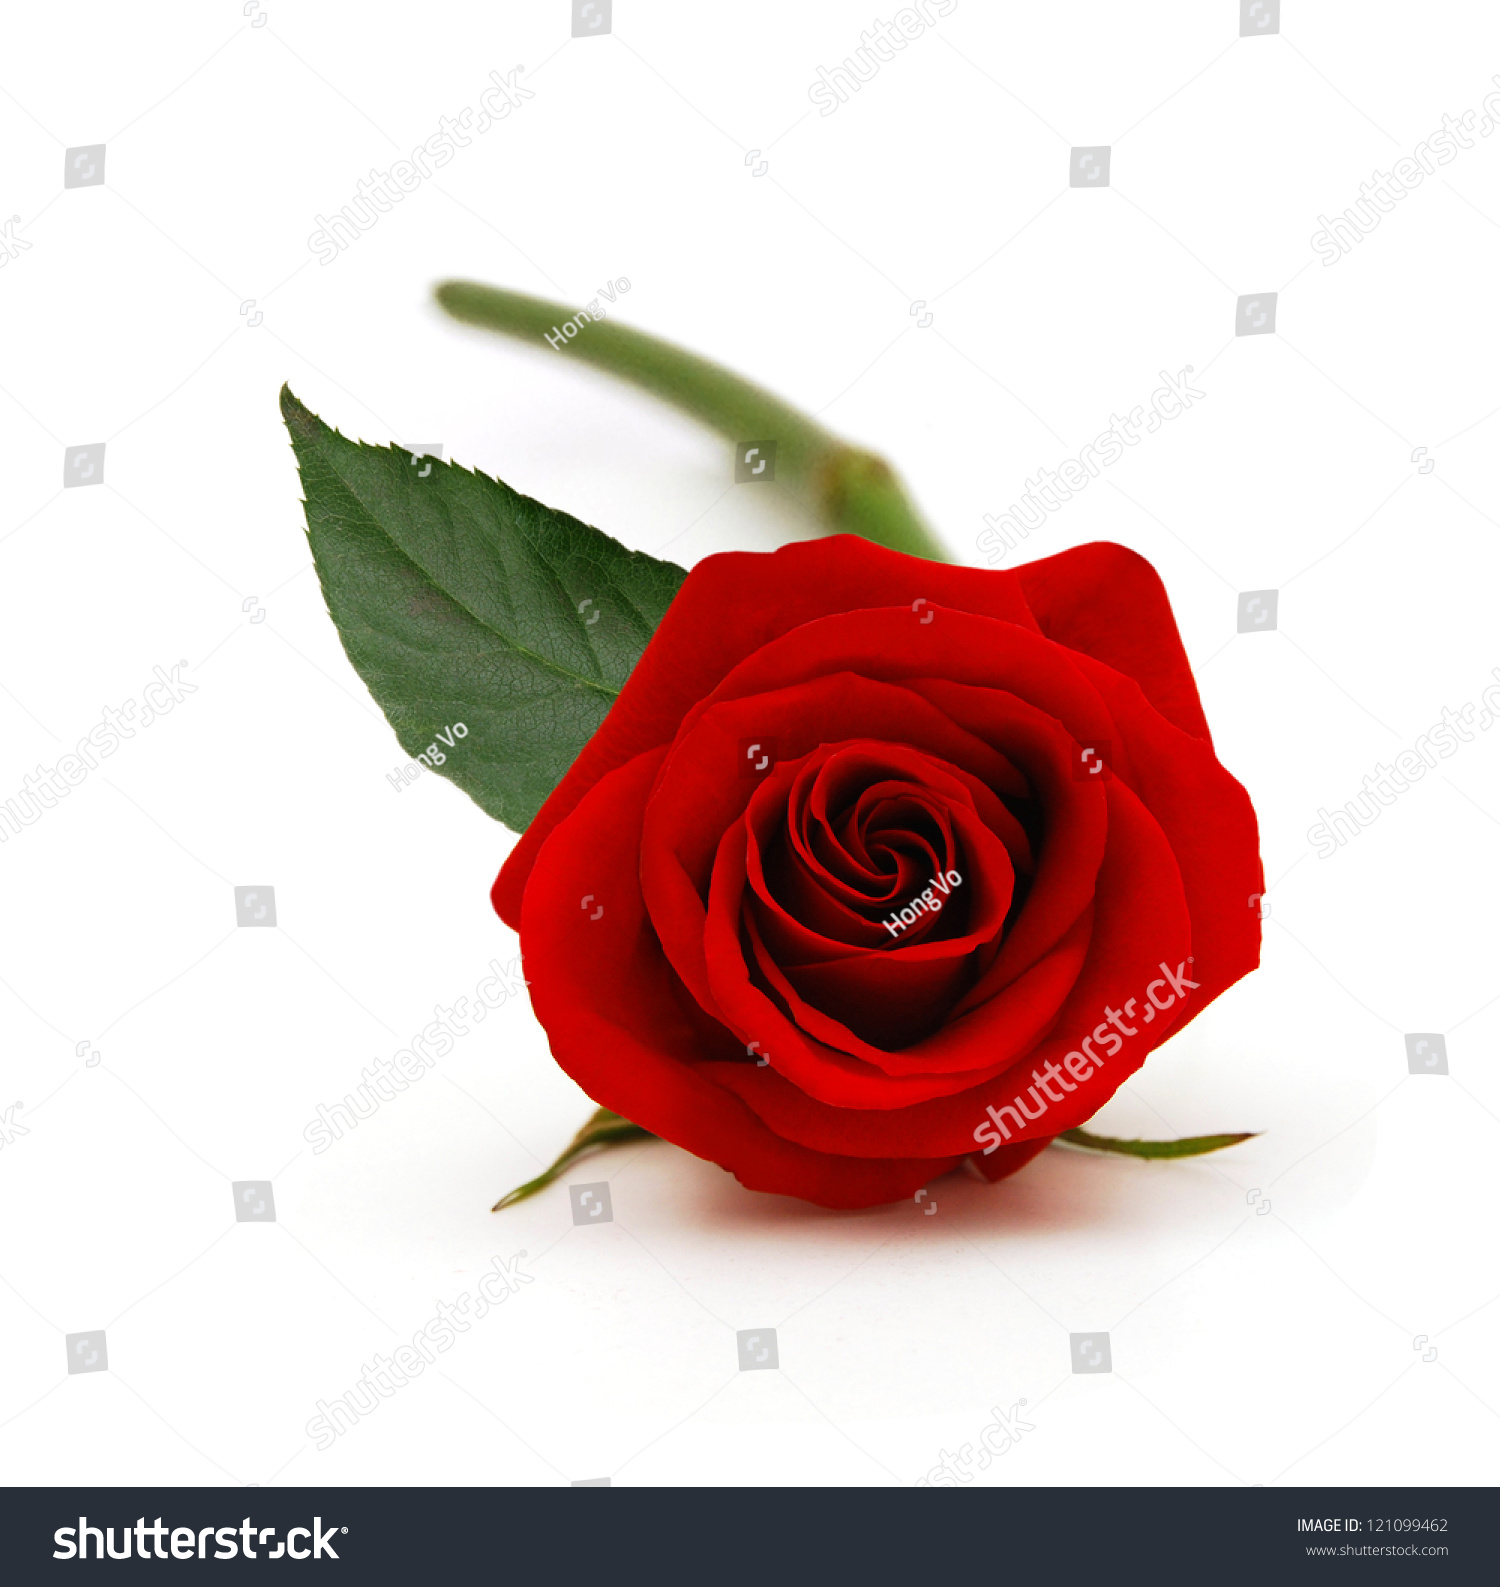 Bunch Of Rose Flowers On White Background Stock Photo ...